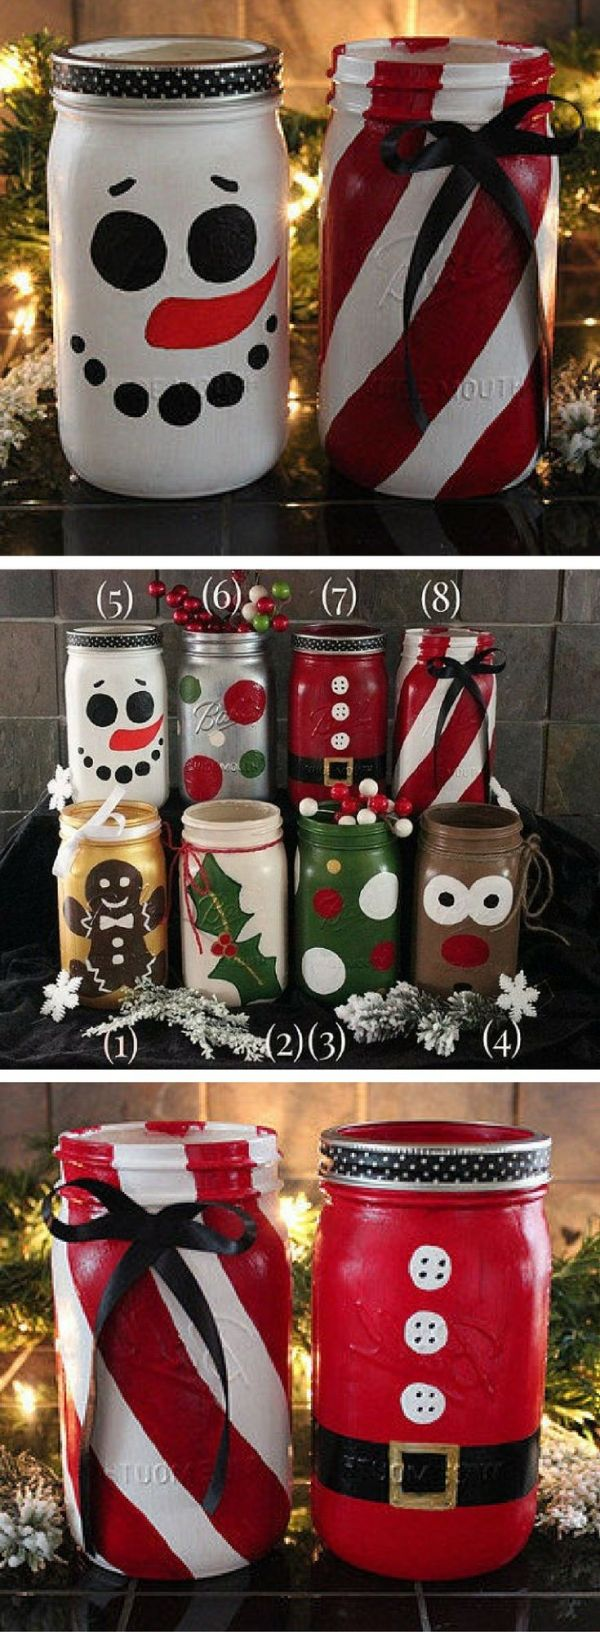 Hand painted Christmas mason jars! Holiday Mason Jars - Snowman Jar - Santa Jar - Reindeer Jar - Gingerbread Man Jar - Santa Clause decor, Christmas decor, Rustic Christmas, Farmhouse Christmas gift #ad by henrietta #rustikaleweihnachten